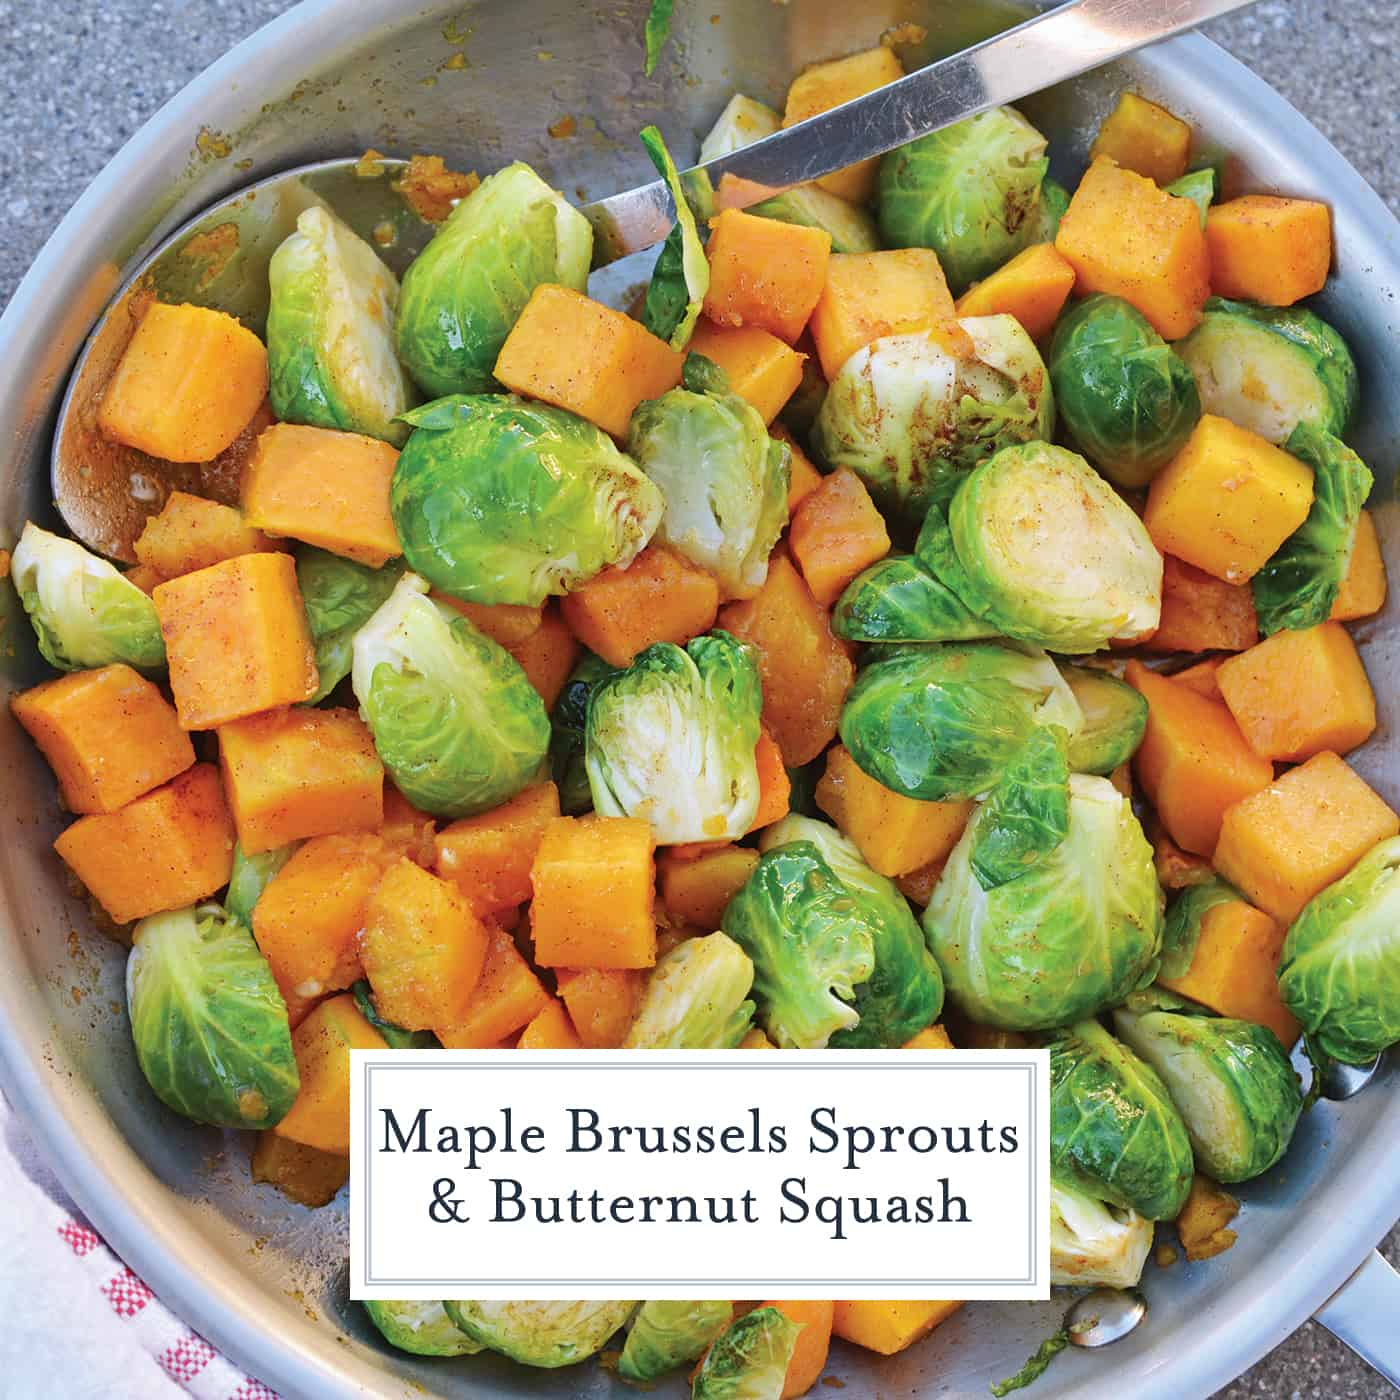 These Maple Brussels Sprouts and Butternut Squash make the best, easy vegetable side dish! This easy side dish can be on your dinner table in under 30 minutes. #brusselssproutsrecipes #easysidedishes #butternutsquashrecipes #savoryexperiments